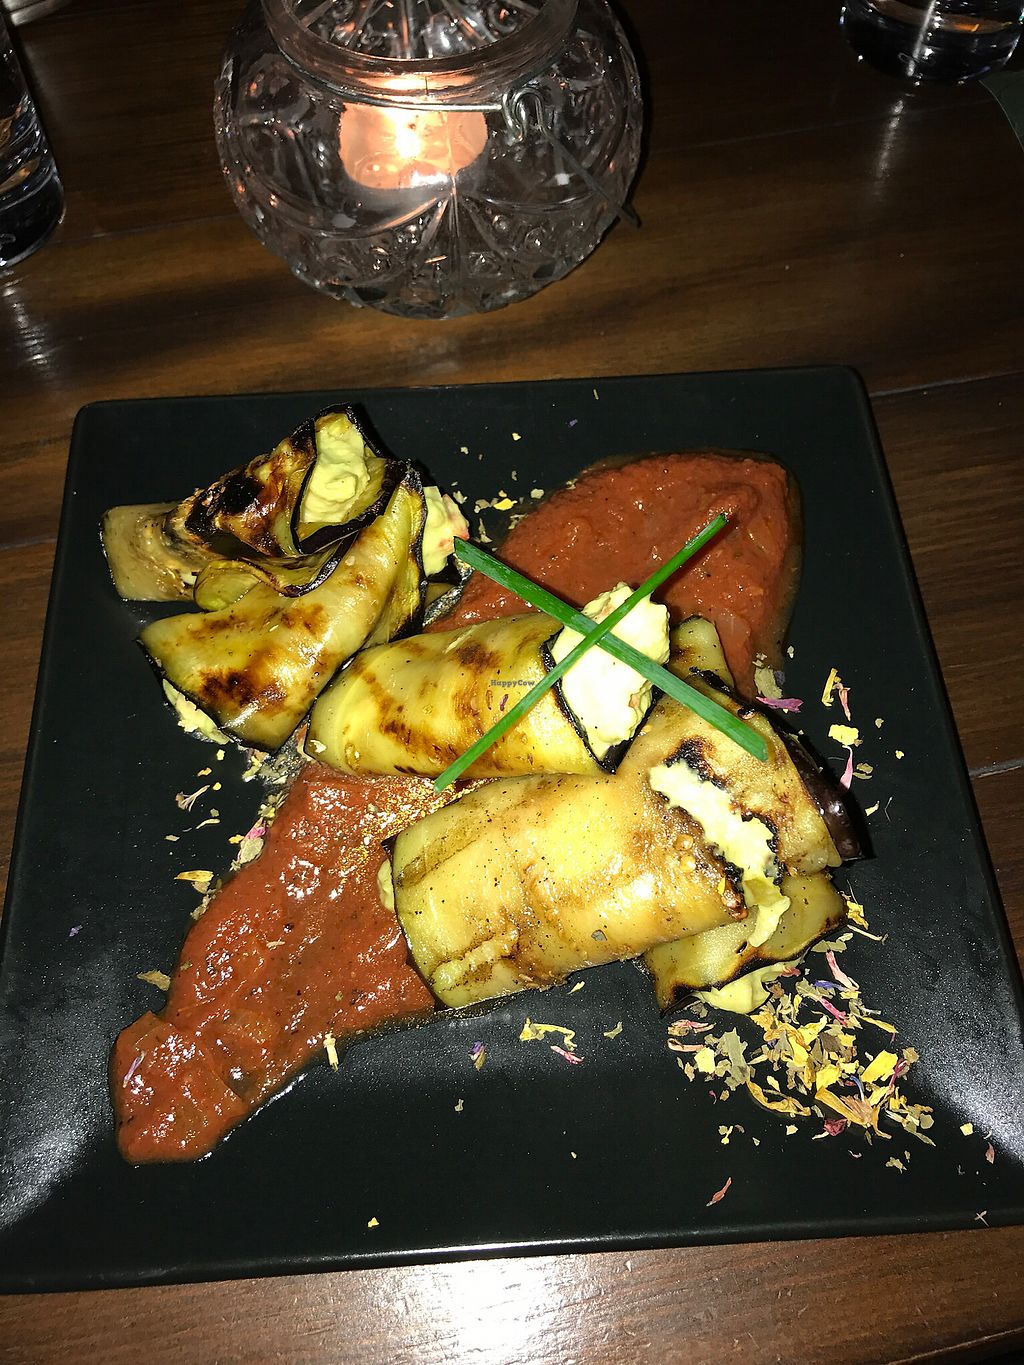 """Photo of rOOTS  by <a href=""""/members/profile/natalielef"""">natalielef</a> <br/>Aubergine stuffed with guacamole <br/> September 29, 2017  - <a href='/contact/abuse/image/56798/309623'>Report</a>"""